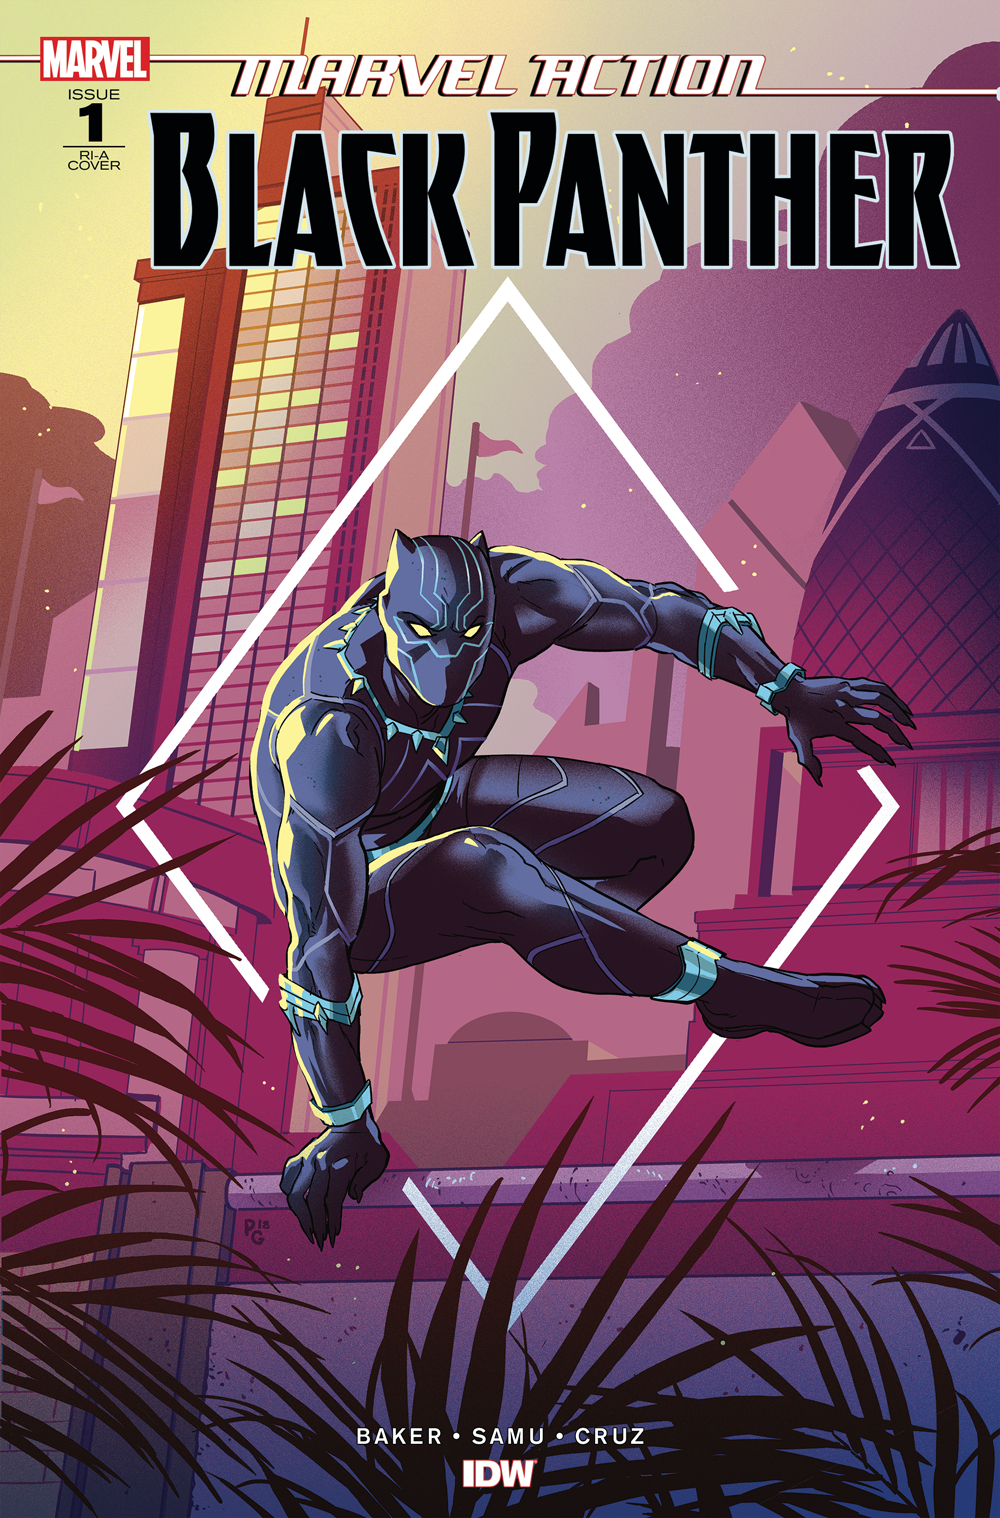 MARVEL ACTION BLACK PANTHER #1 10 COPY INCV BAKER (Net)